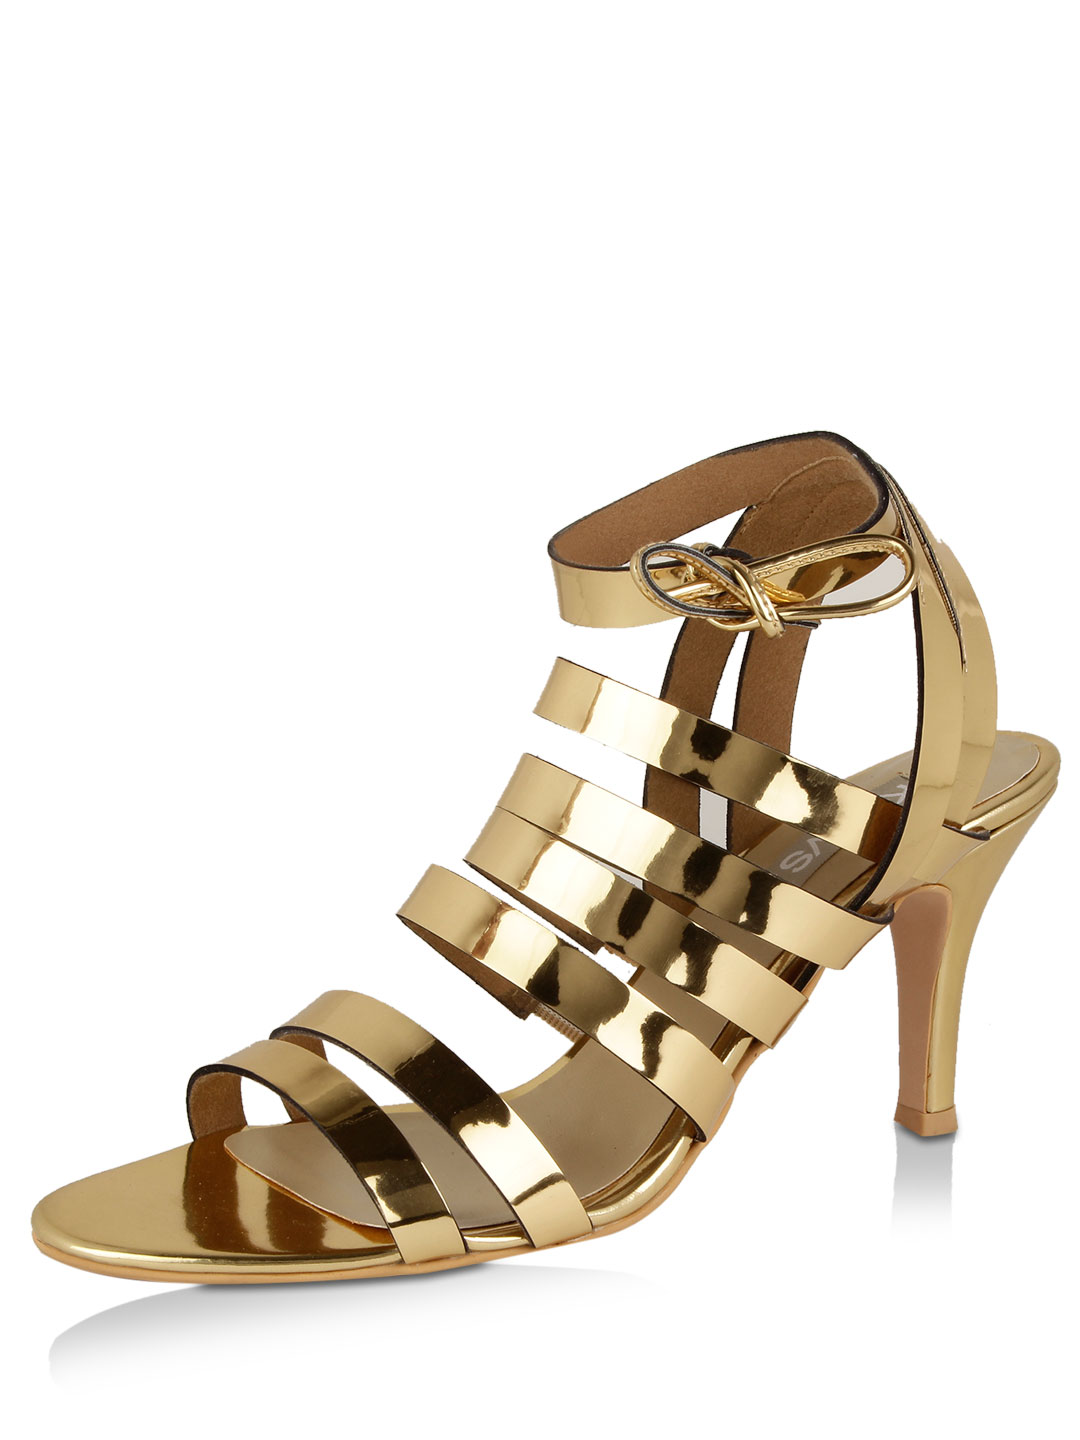 KOOVS Gold Gold Strappy High Heeled Sandals 1